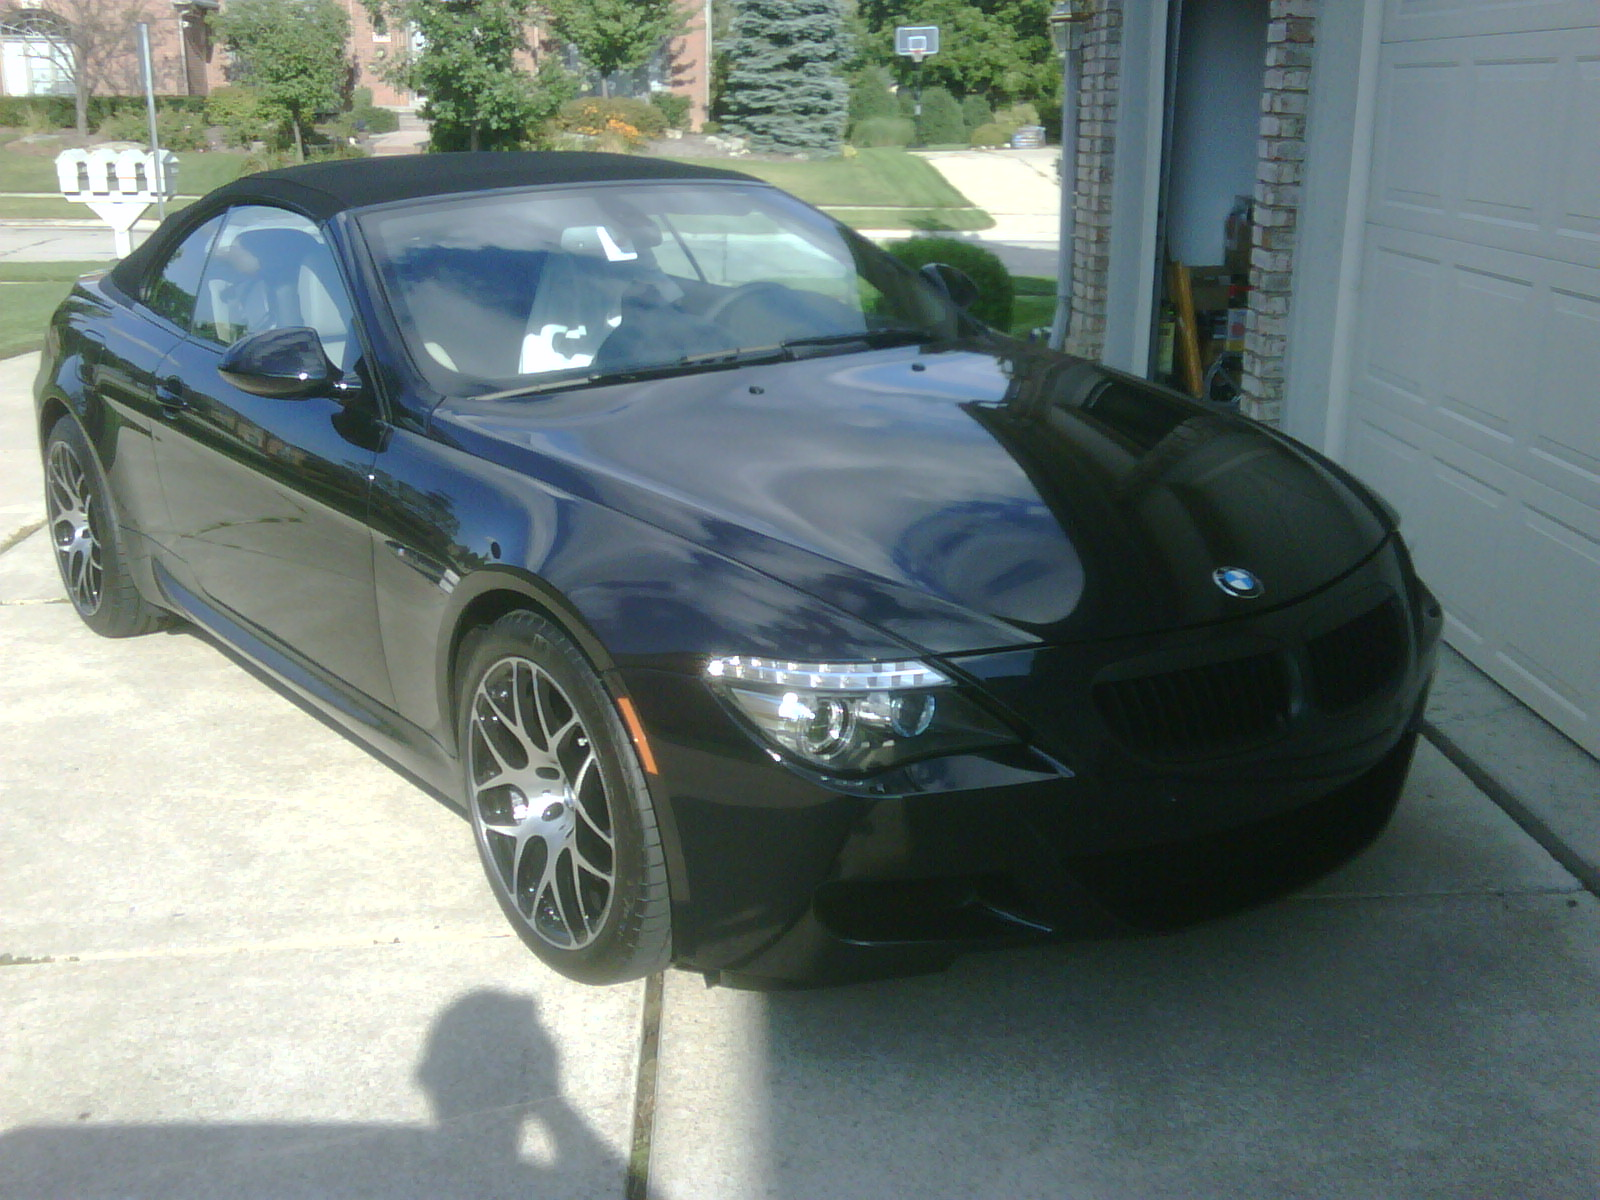 2009 Bmw M6 Interior. receives his 2009 BMW M6